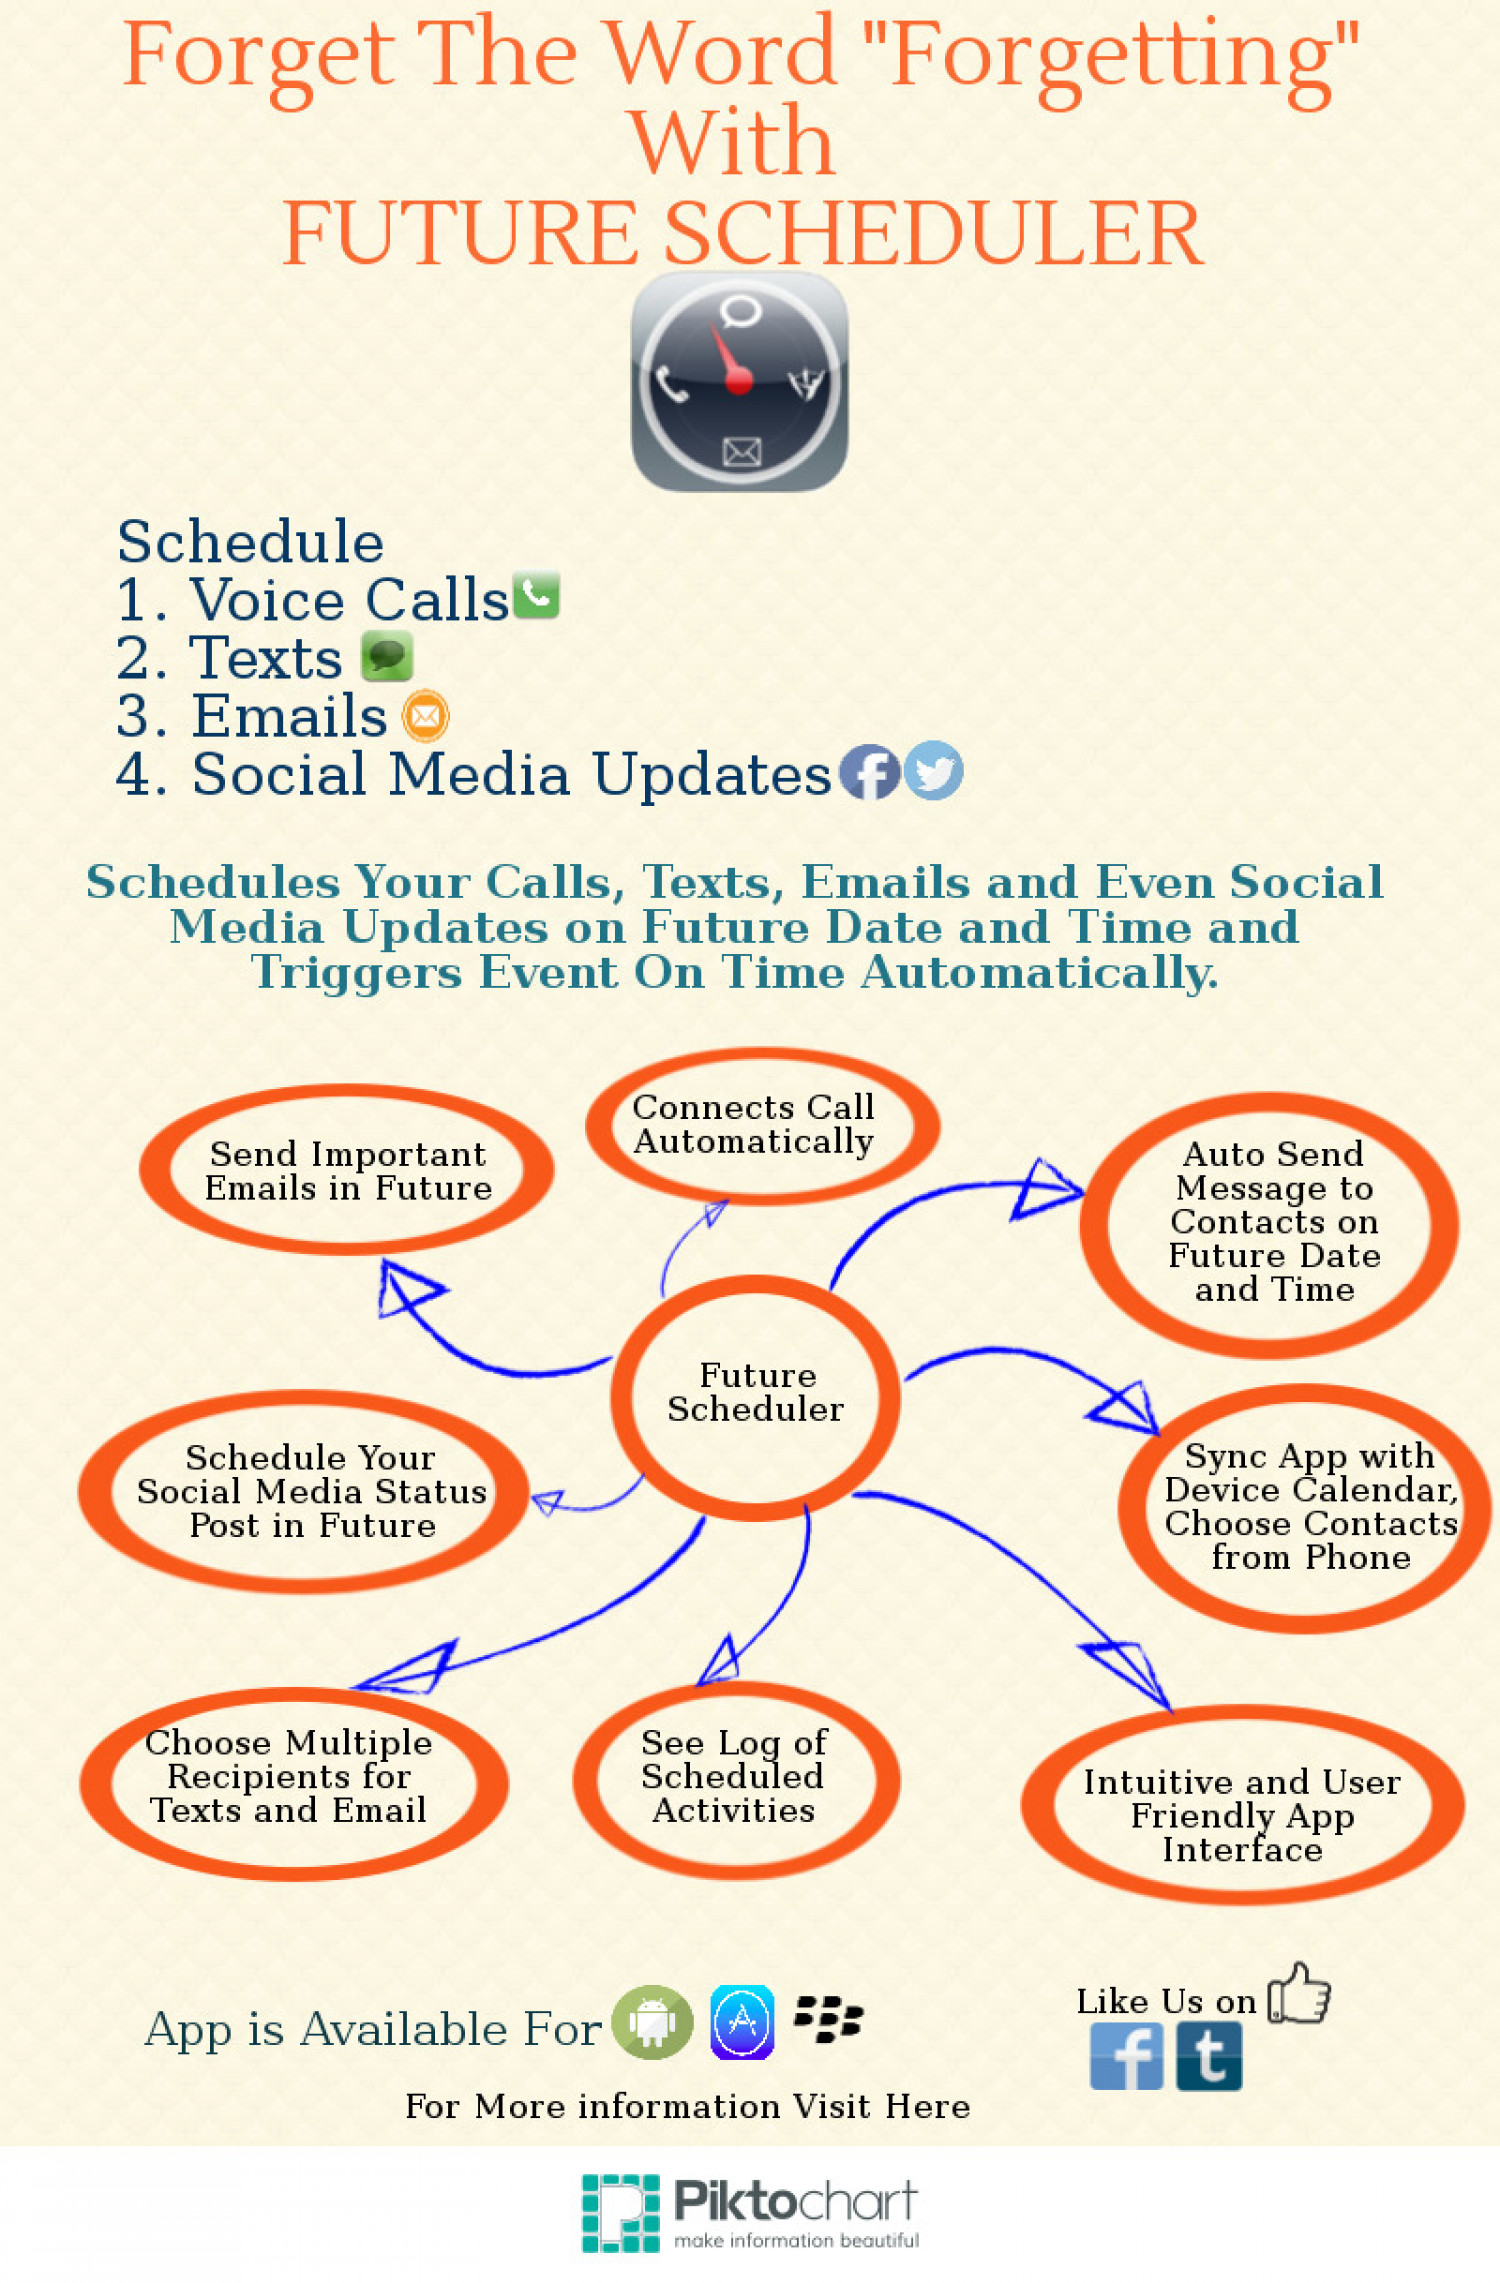 Future Scheduler App to Schedule Calls, Texts, Emails, and Social Status Infographic